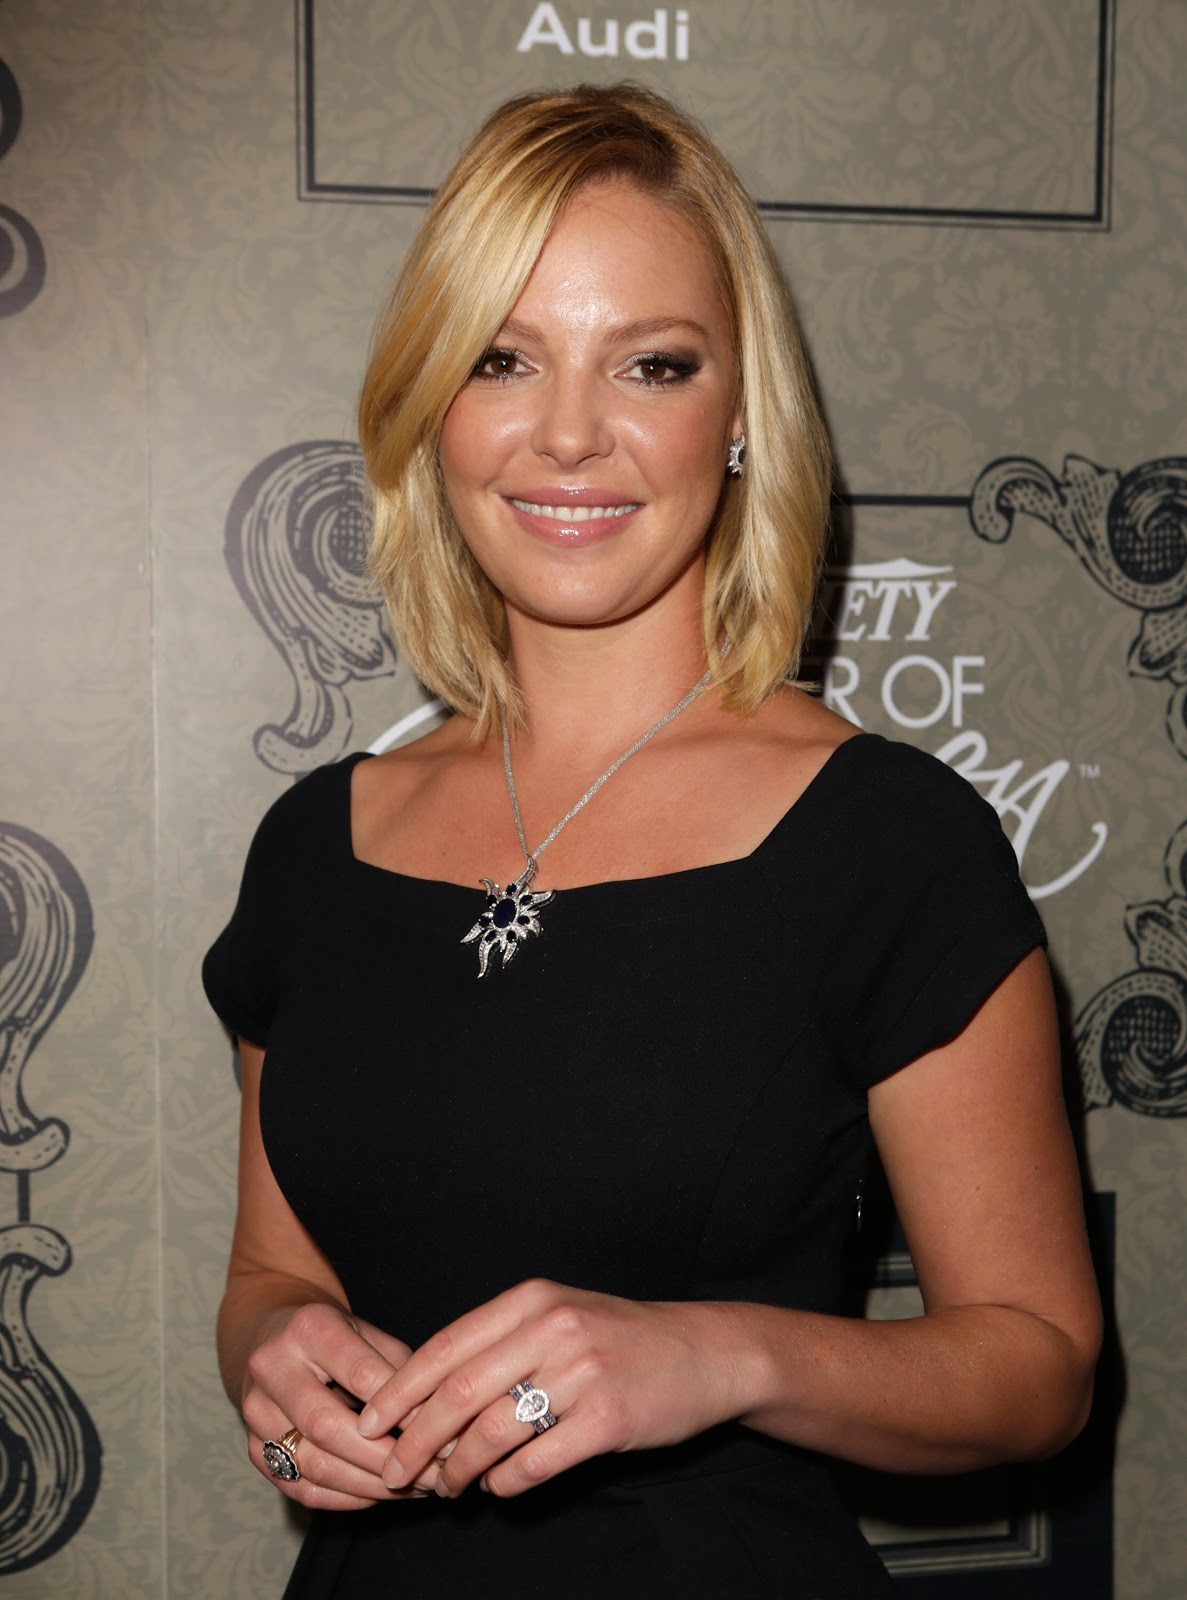 http://4.bp.blogspot.com/-1HyrXs-OOr4/UIPY89NHwjI/AAAAAAAAi_U/0kzrXnMqPNI/s1600/Katherine+Heigl+-+Variety%2527s+4th+Annual+Power+of+Women+Event+in+Beverly+Hills+-+October+10%252C+2012+2.jpg